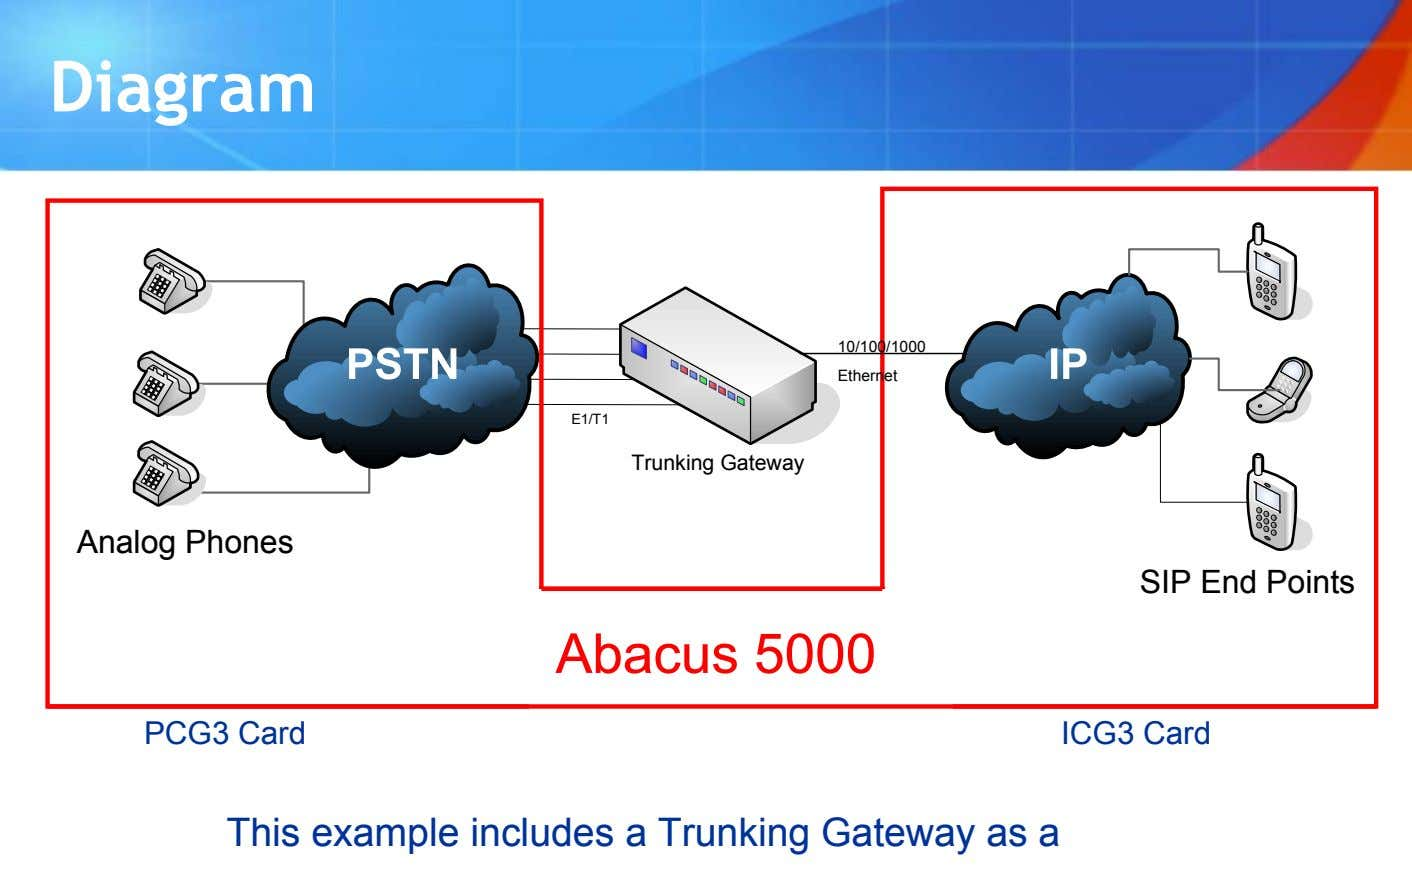 Diagram 10/100/1000 Ethernet E1/T1 Trunking Gateway Analog Phones SIP End Points Abacus 5000 PCG3 Card